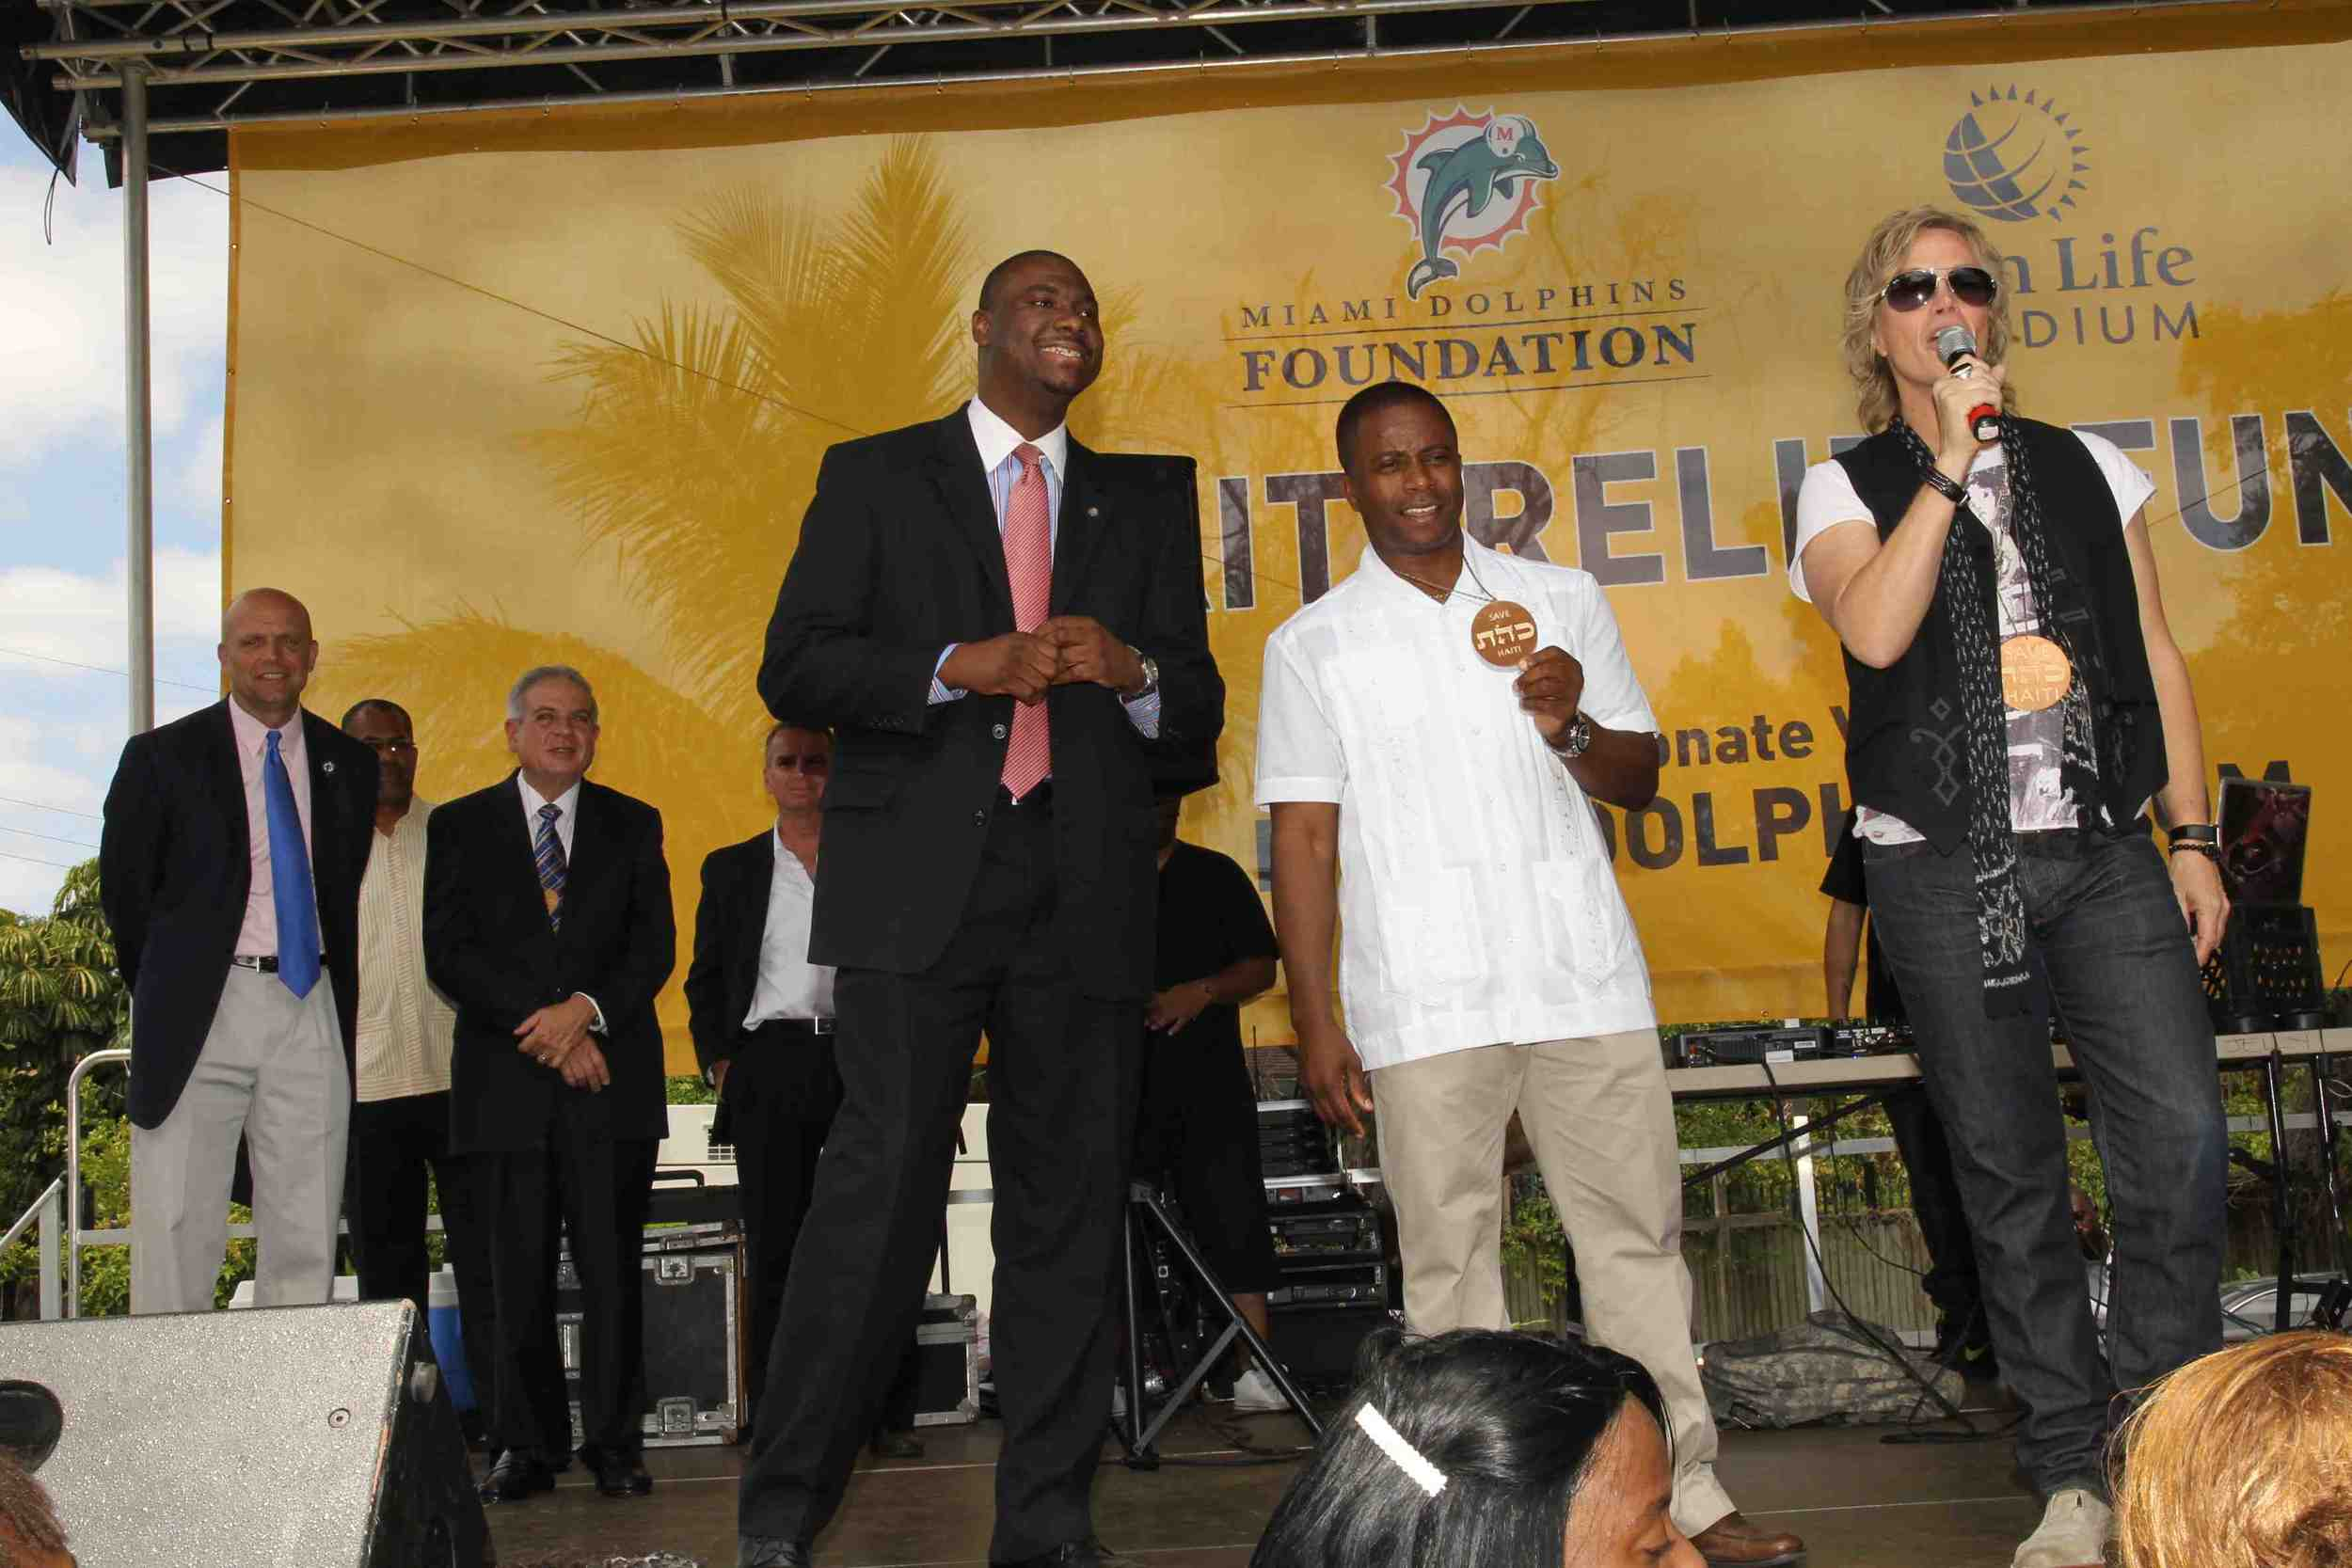 March 30, 2010    Brian Ray, guitarist for Paul McCartney, and Mayor of Miami at Haiti Relief Event